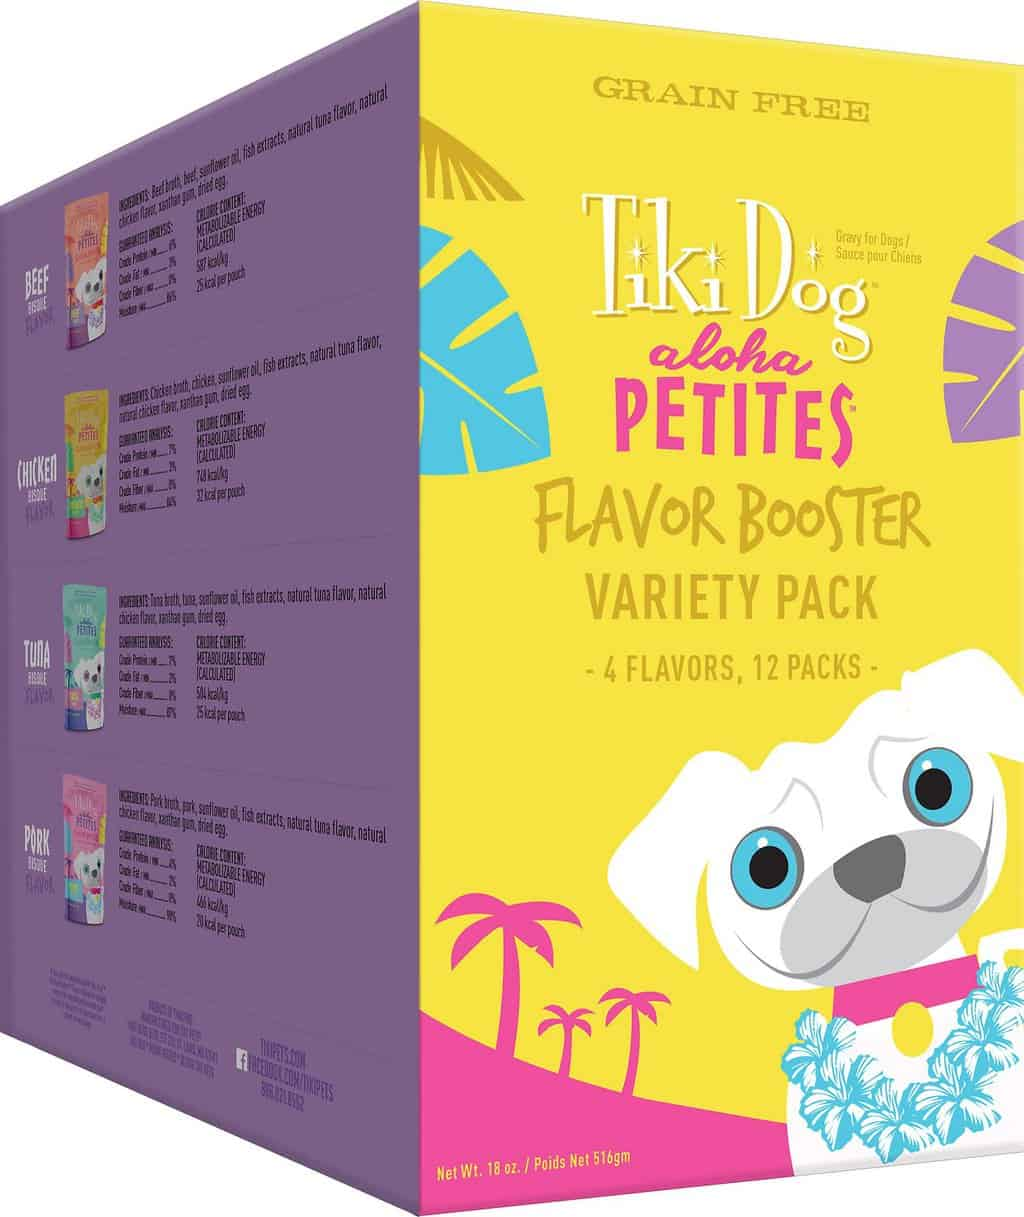 Tiki Dog Food: 2021 Reviews, Recalls & Coupons 53